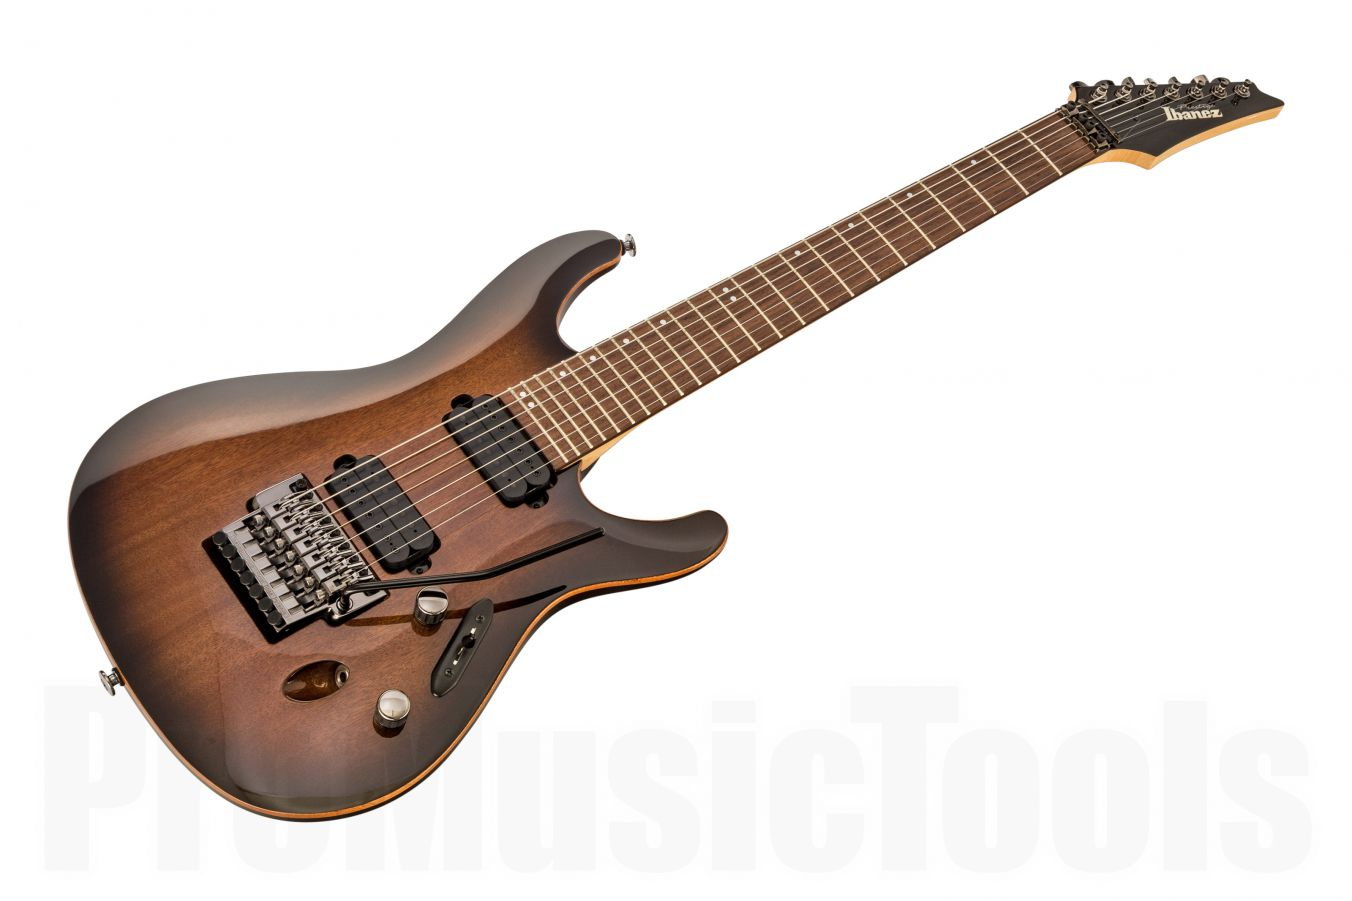 Ibanez S5527 TKS Prestige  - Transparent Black Sunburst